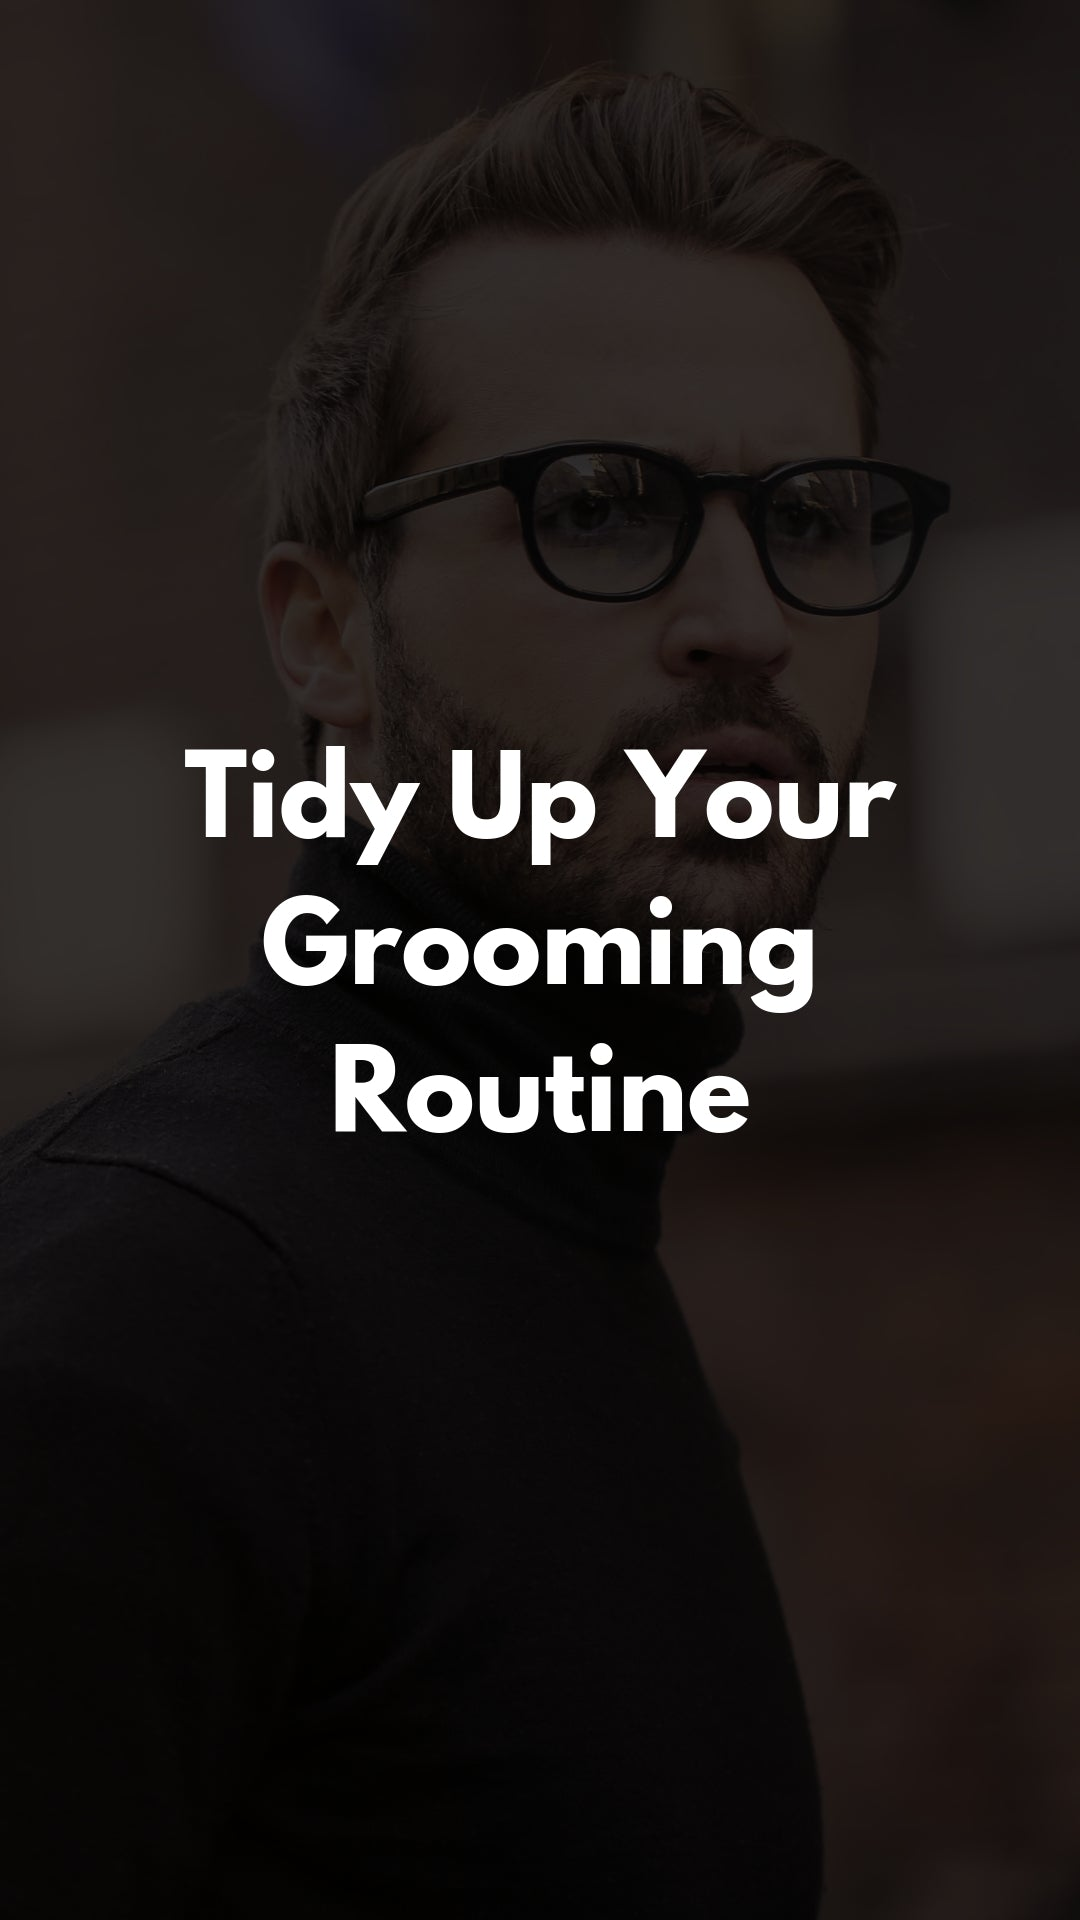 Hop on the Men's Self-Care Bandwagon This Spring and Tidy Up Your Grooming Routine